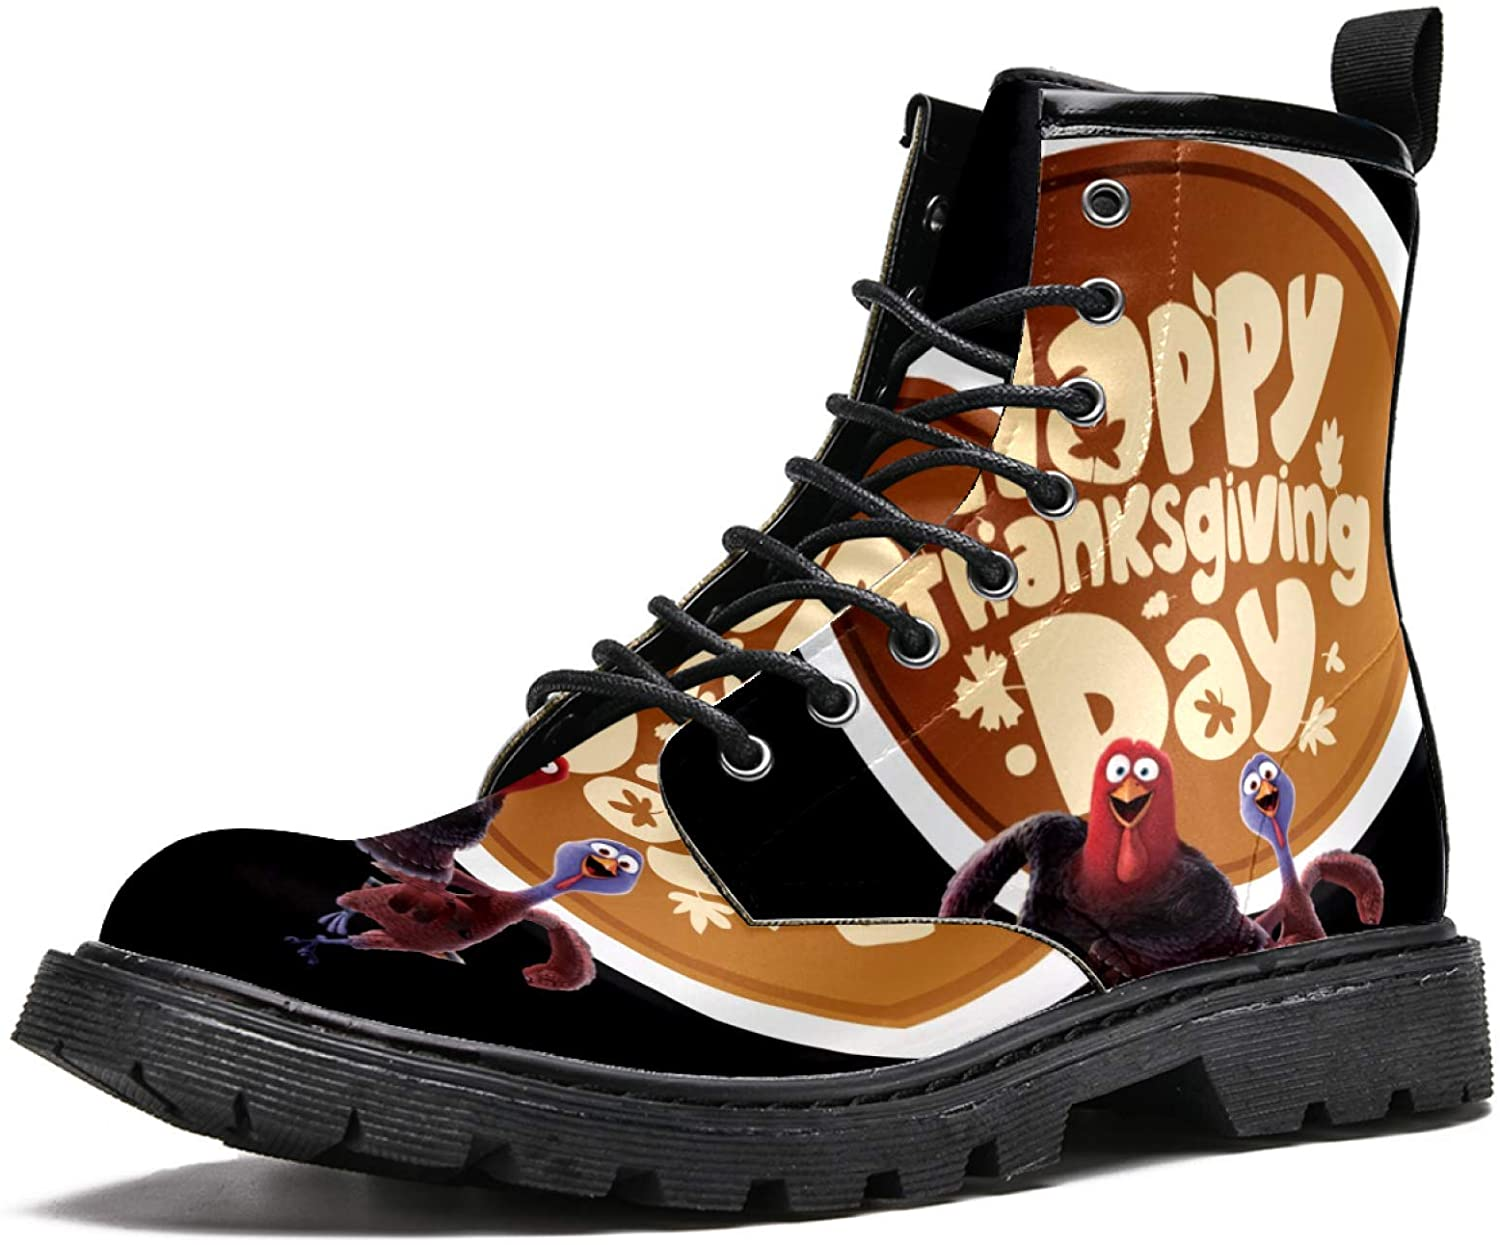 LORVIES Running Turkeys Bring Happy Thanksgiving Men's High Top Boots Lace Up Casual Leather Ankle Shoes